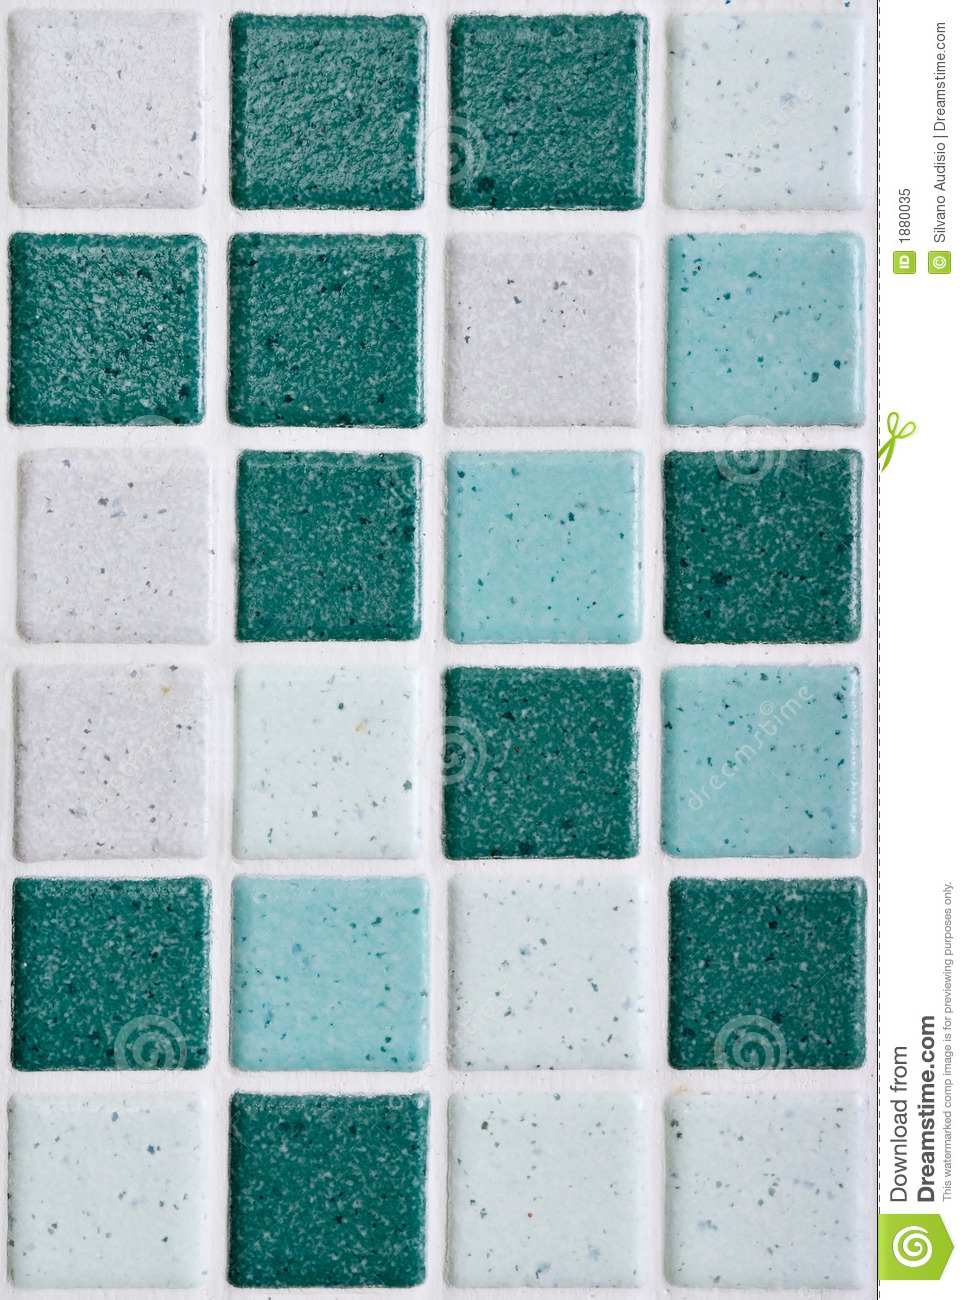 Bathroom 39 S Tiles Royalty Free Stock Photo Image 1880035